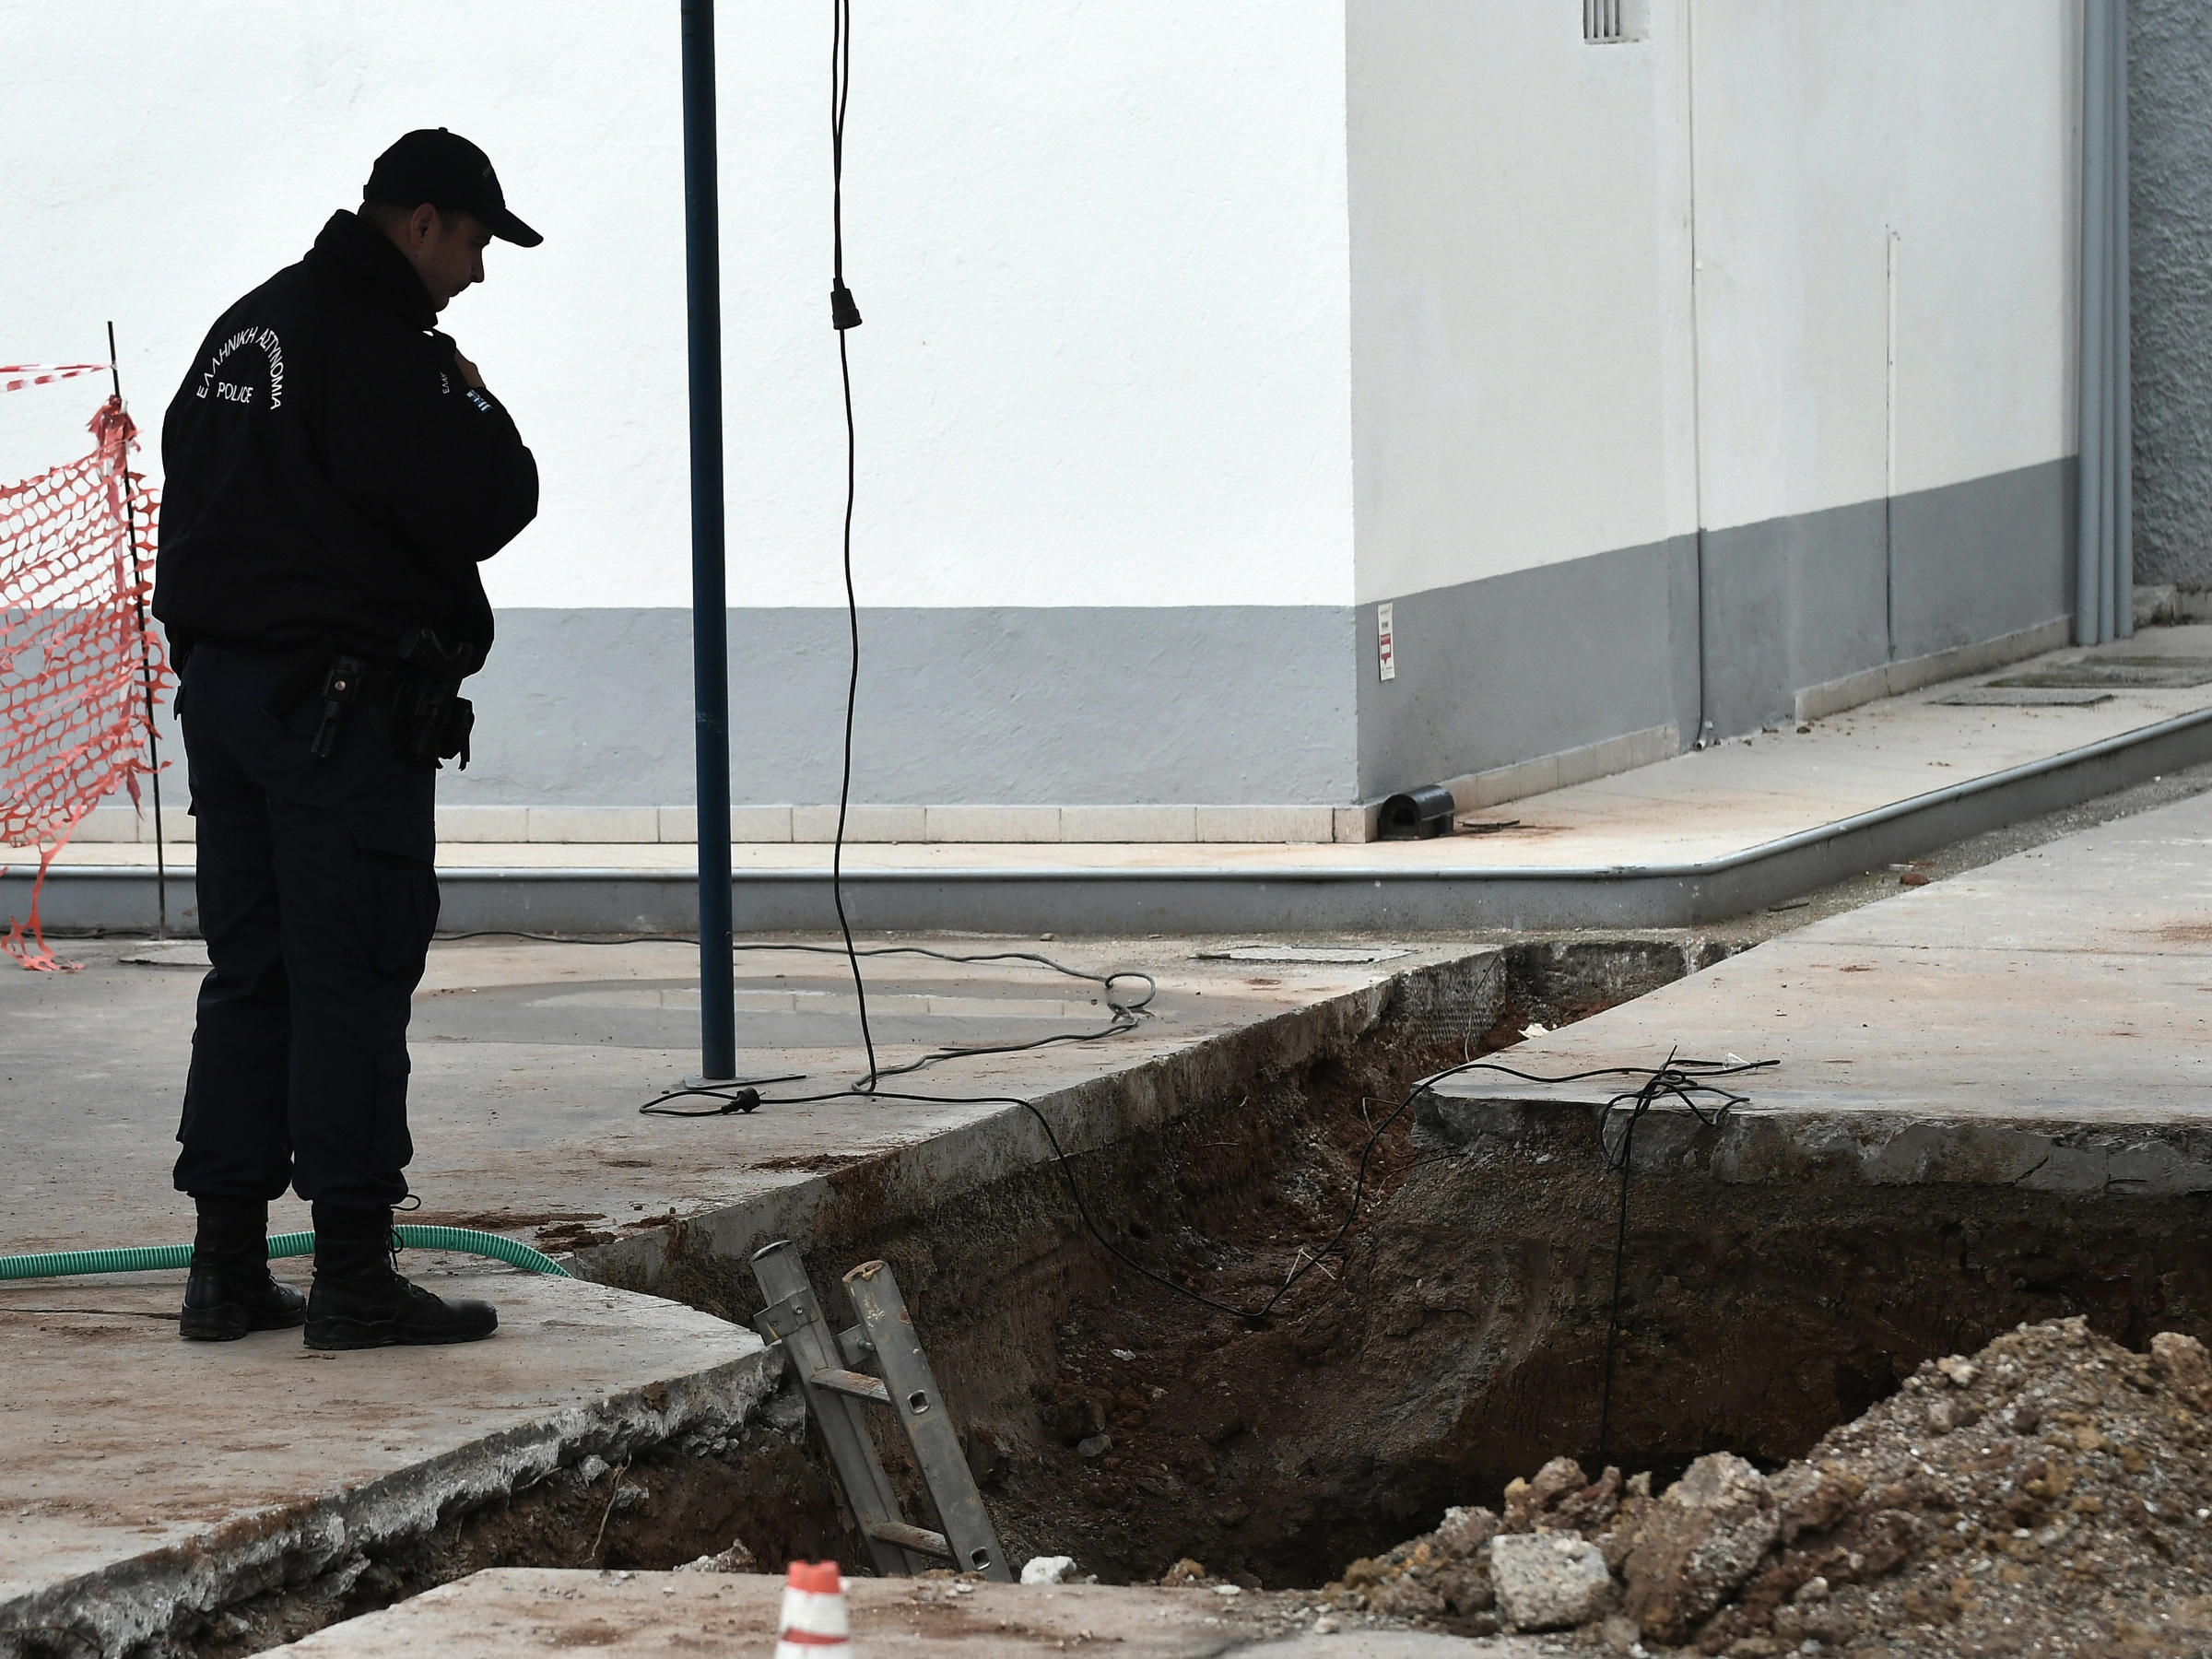 On Wednesday a police officer looks into the hole where an unexploded World War II-era bomb was found during work on a gas station's underground tanks. The city's authorities have planned a massive evacuation Sunday while they attempt to defuse